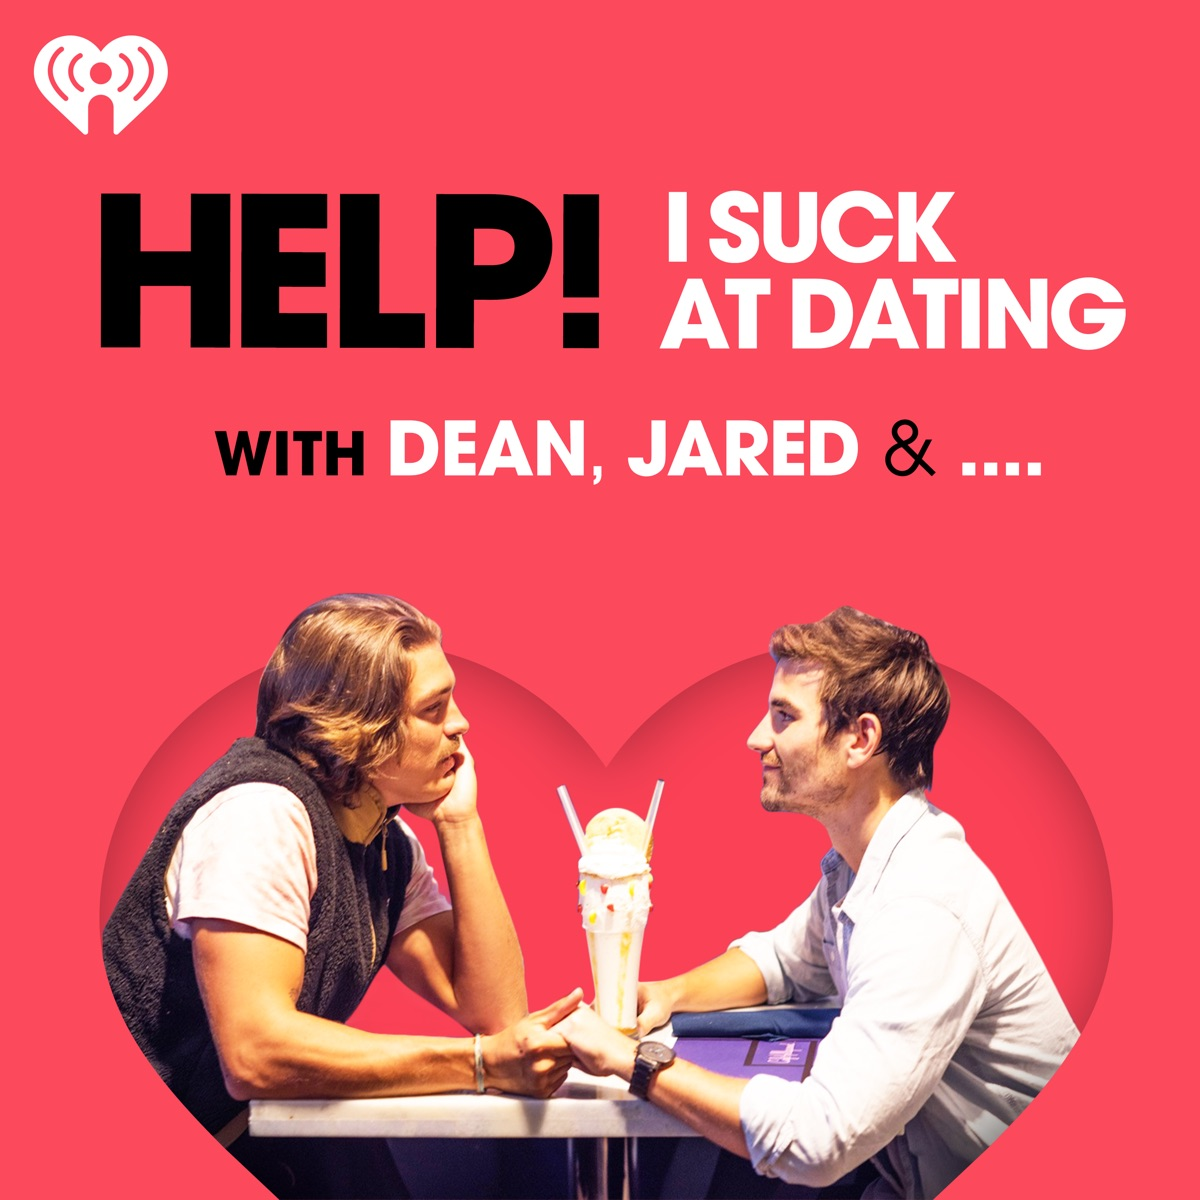 Help! I Suck at Dating with Dean, Jared & ....